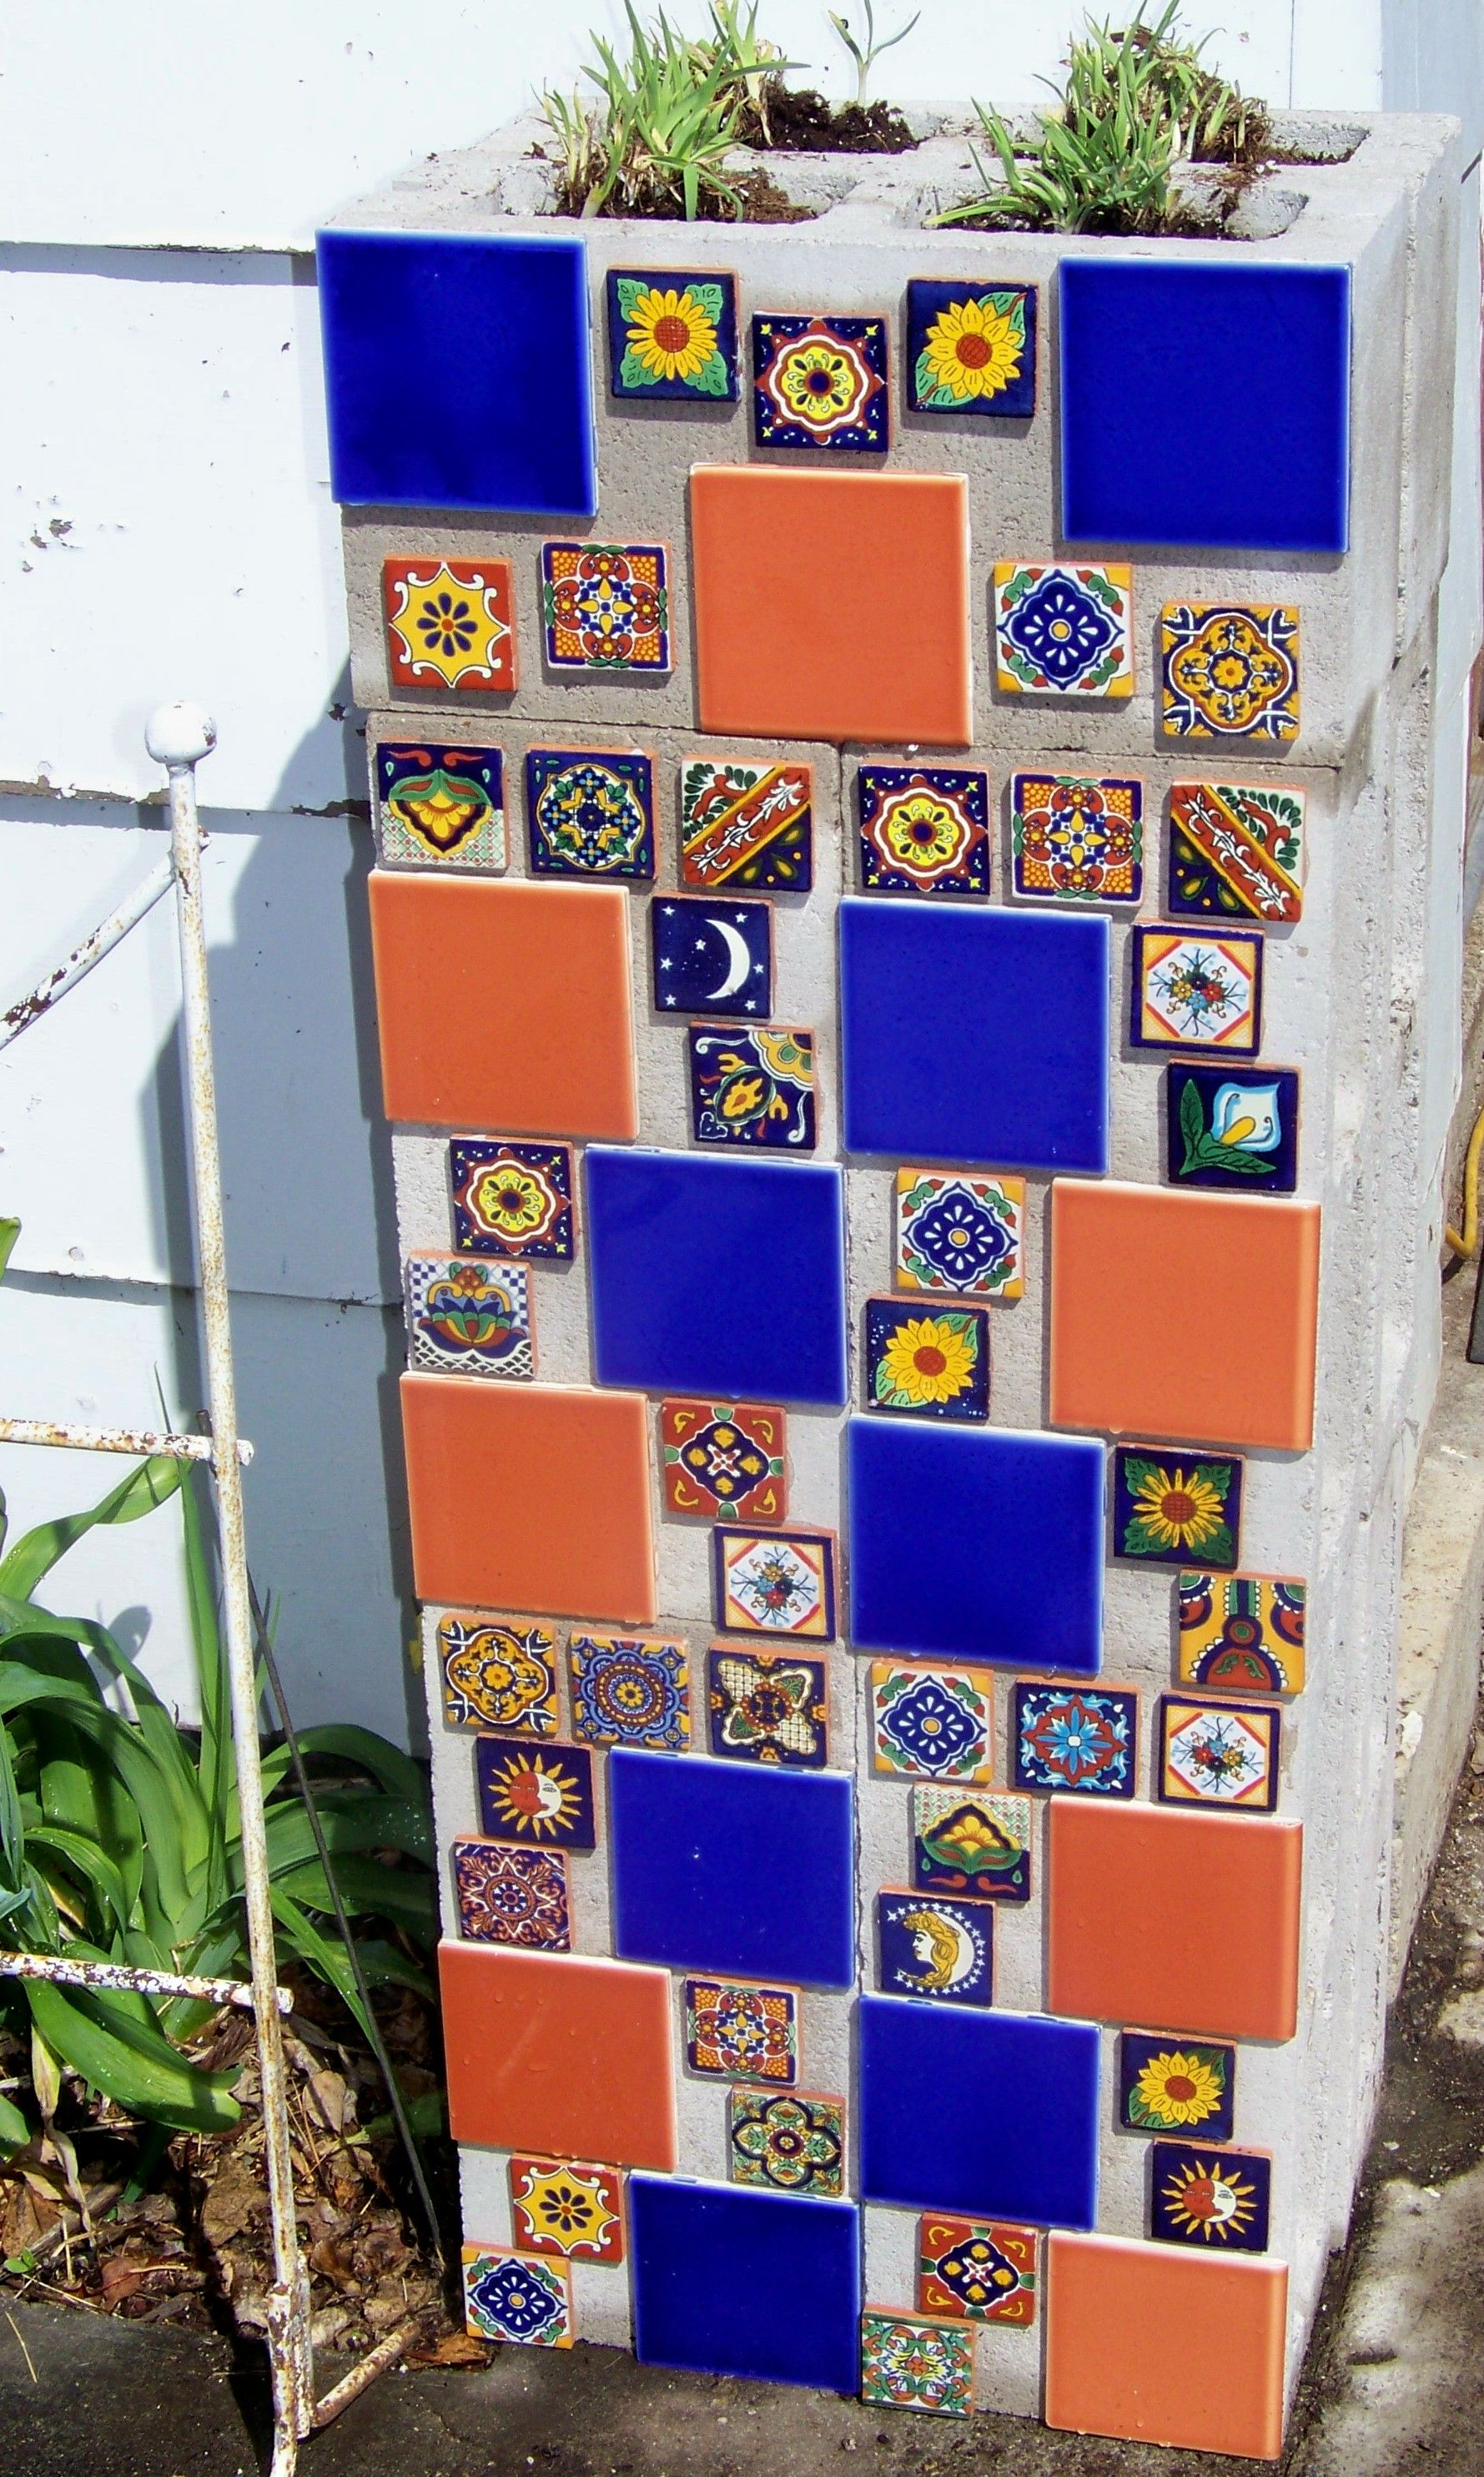 Cement Blocks And Mexican Tiles Maybe This Can Be Redesigned With Something Else Cinder Block Walls Cinder Block Garden Wall Cinder Block Garden